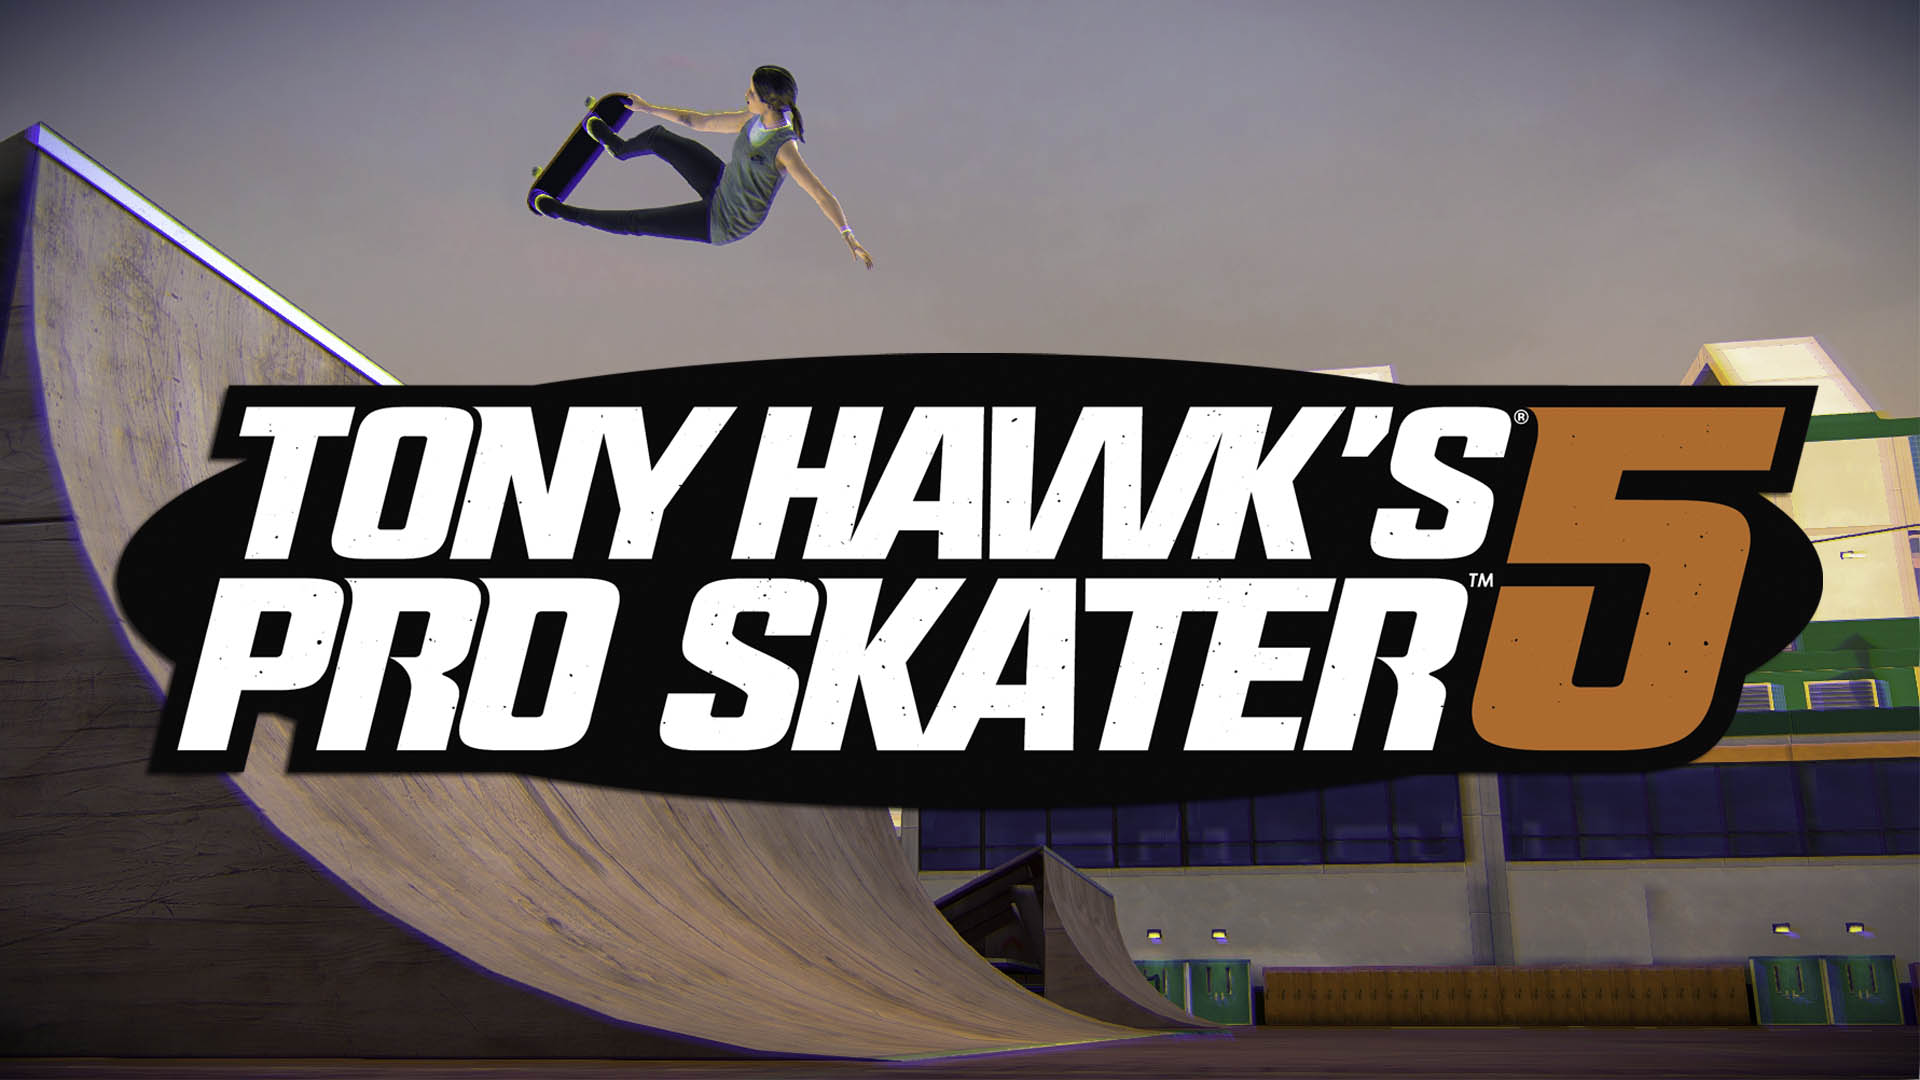 Tony Hawks Pro Skater 5 Details Revealed STG